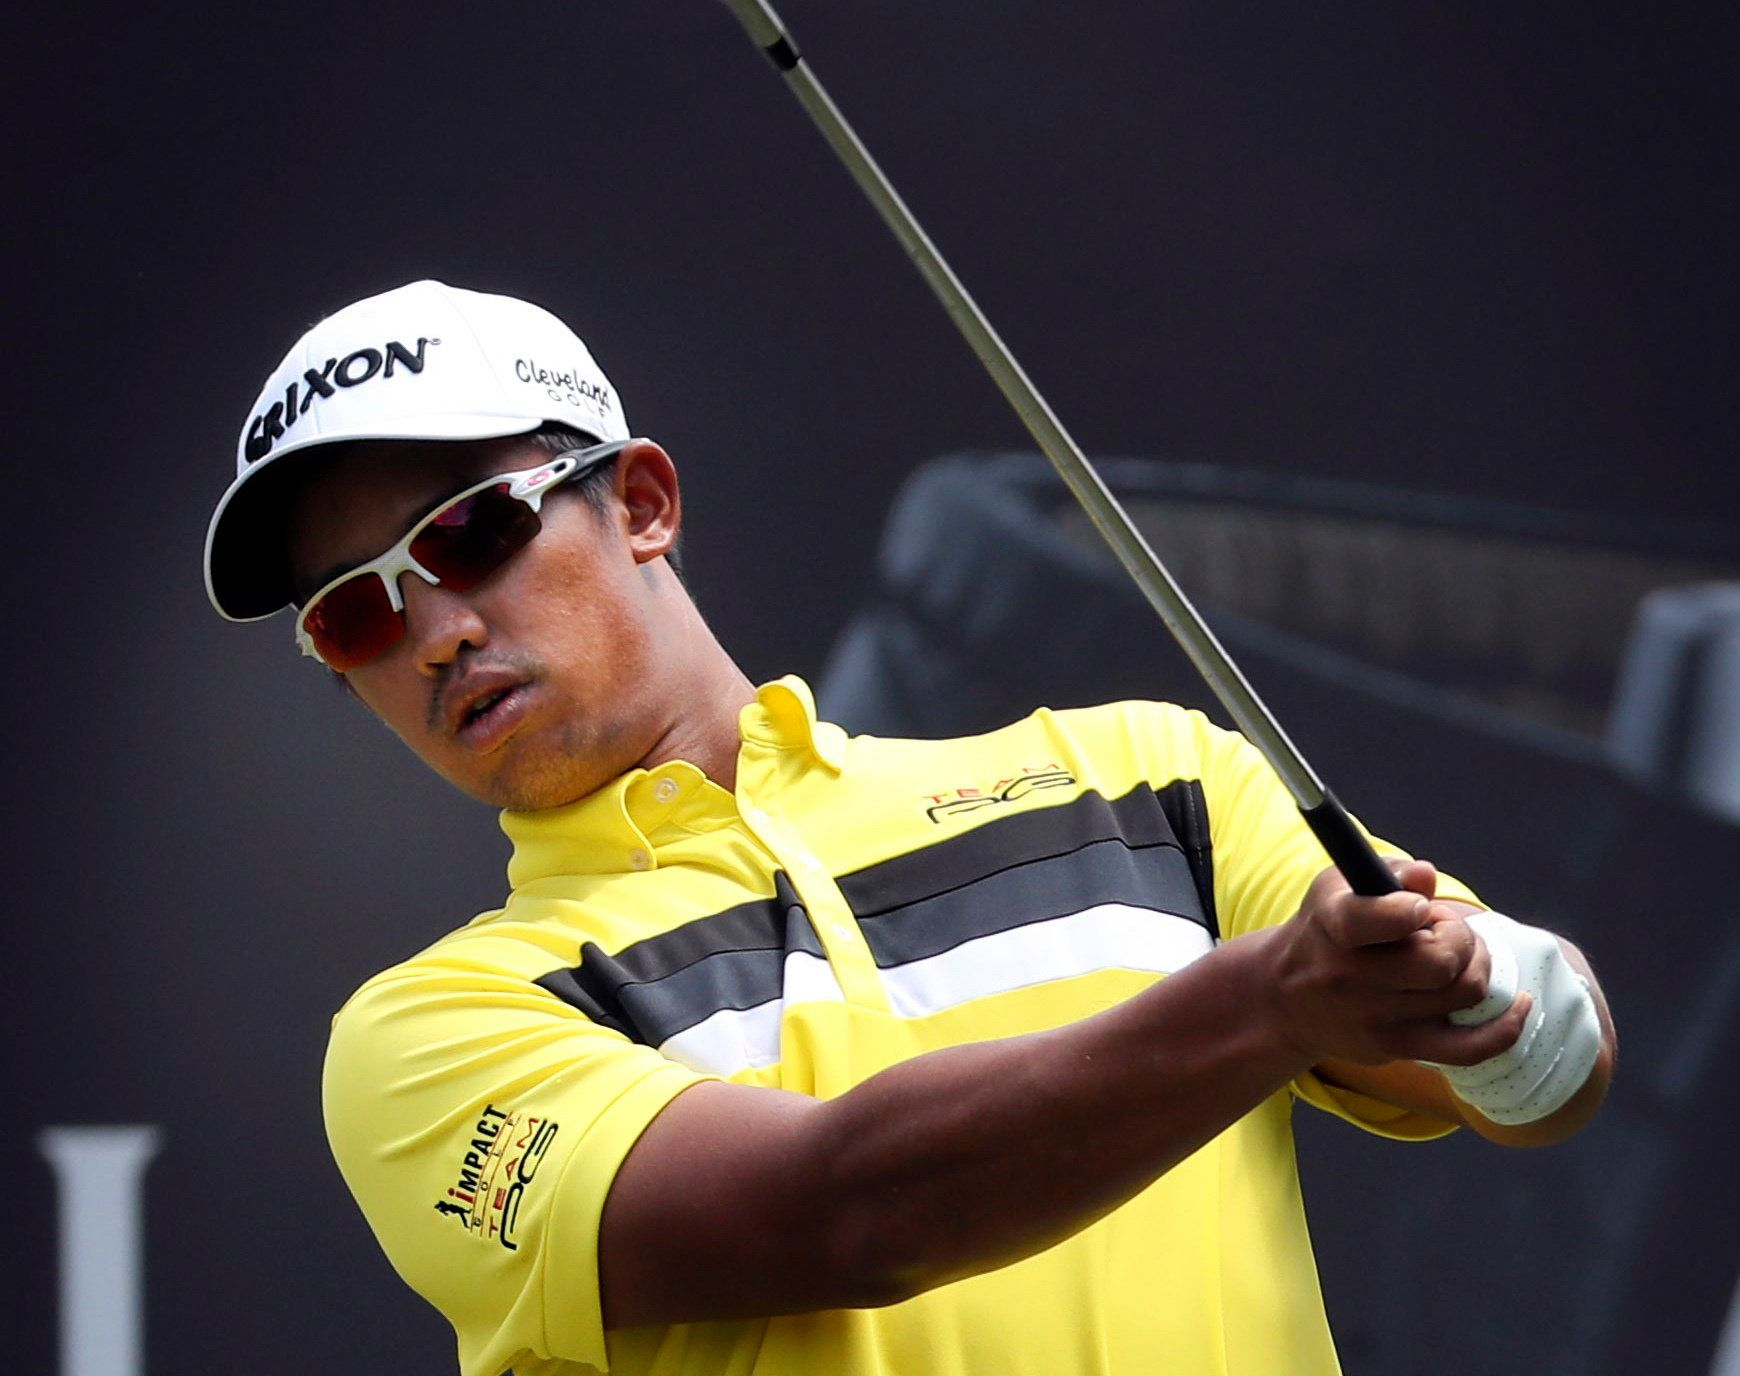 Golfer Arie Irawan, 28, Found Dead In His Hotel Room 5caa22e024000020010679cb